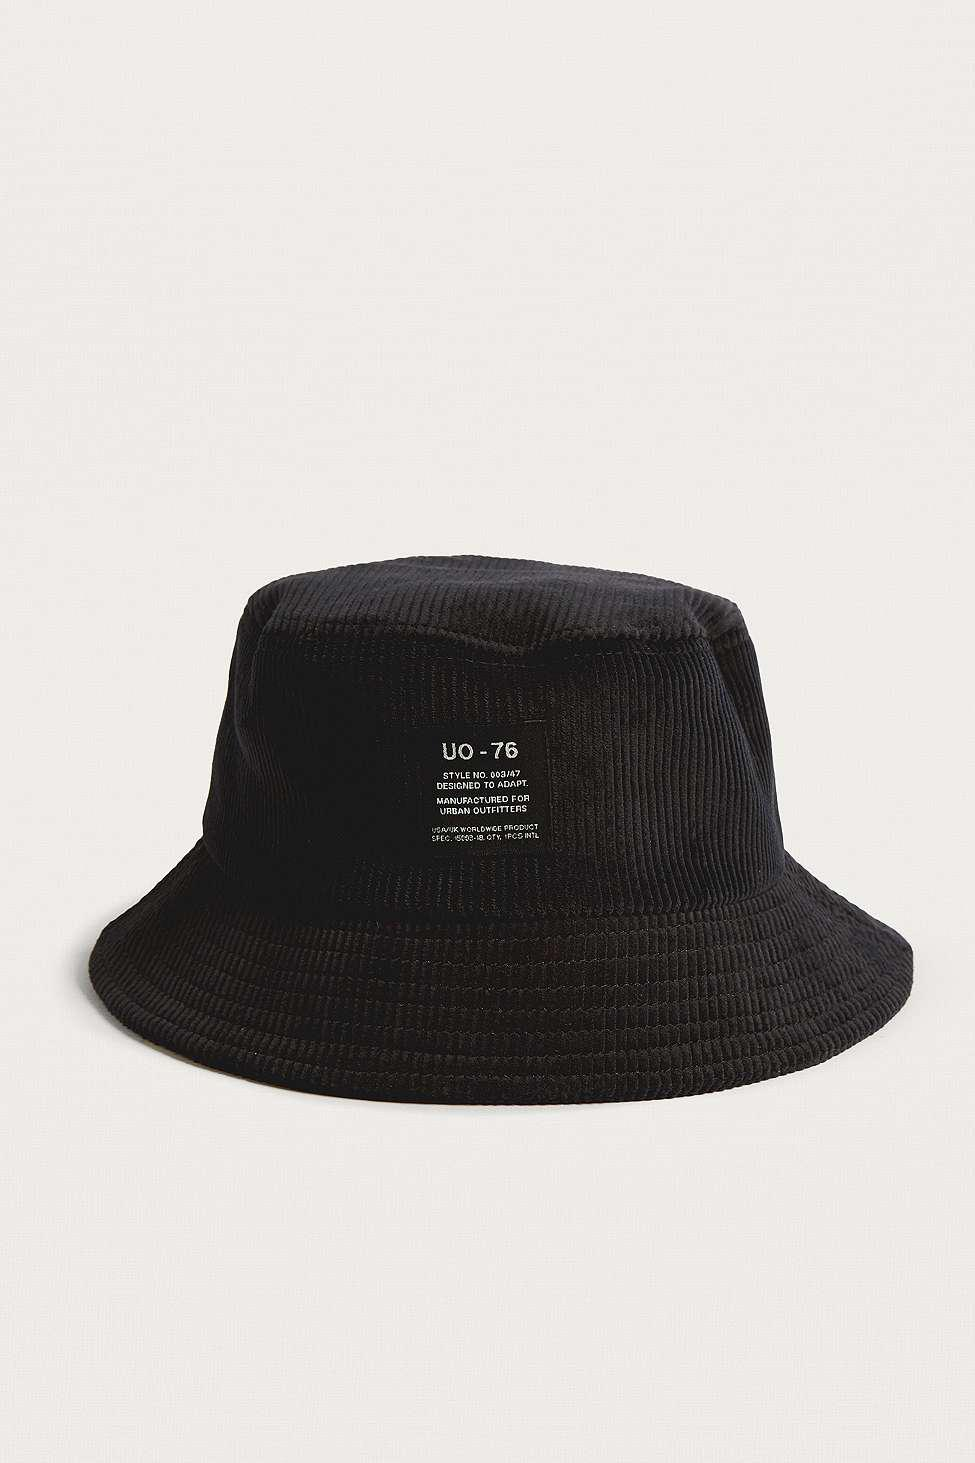 2602a7e6cfb Urban Outfitters Uo Black Corduroy Bucket Hat - Mens All in Black ...